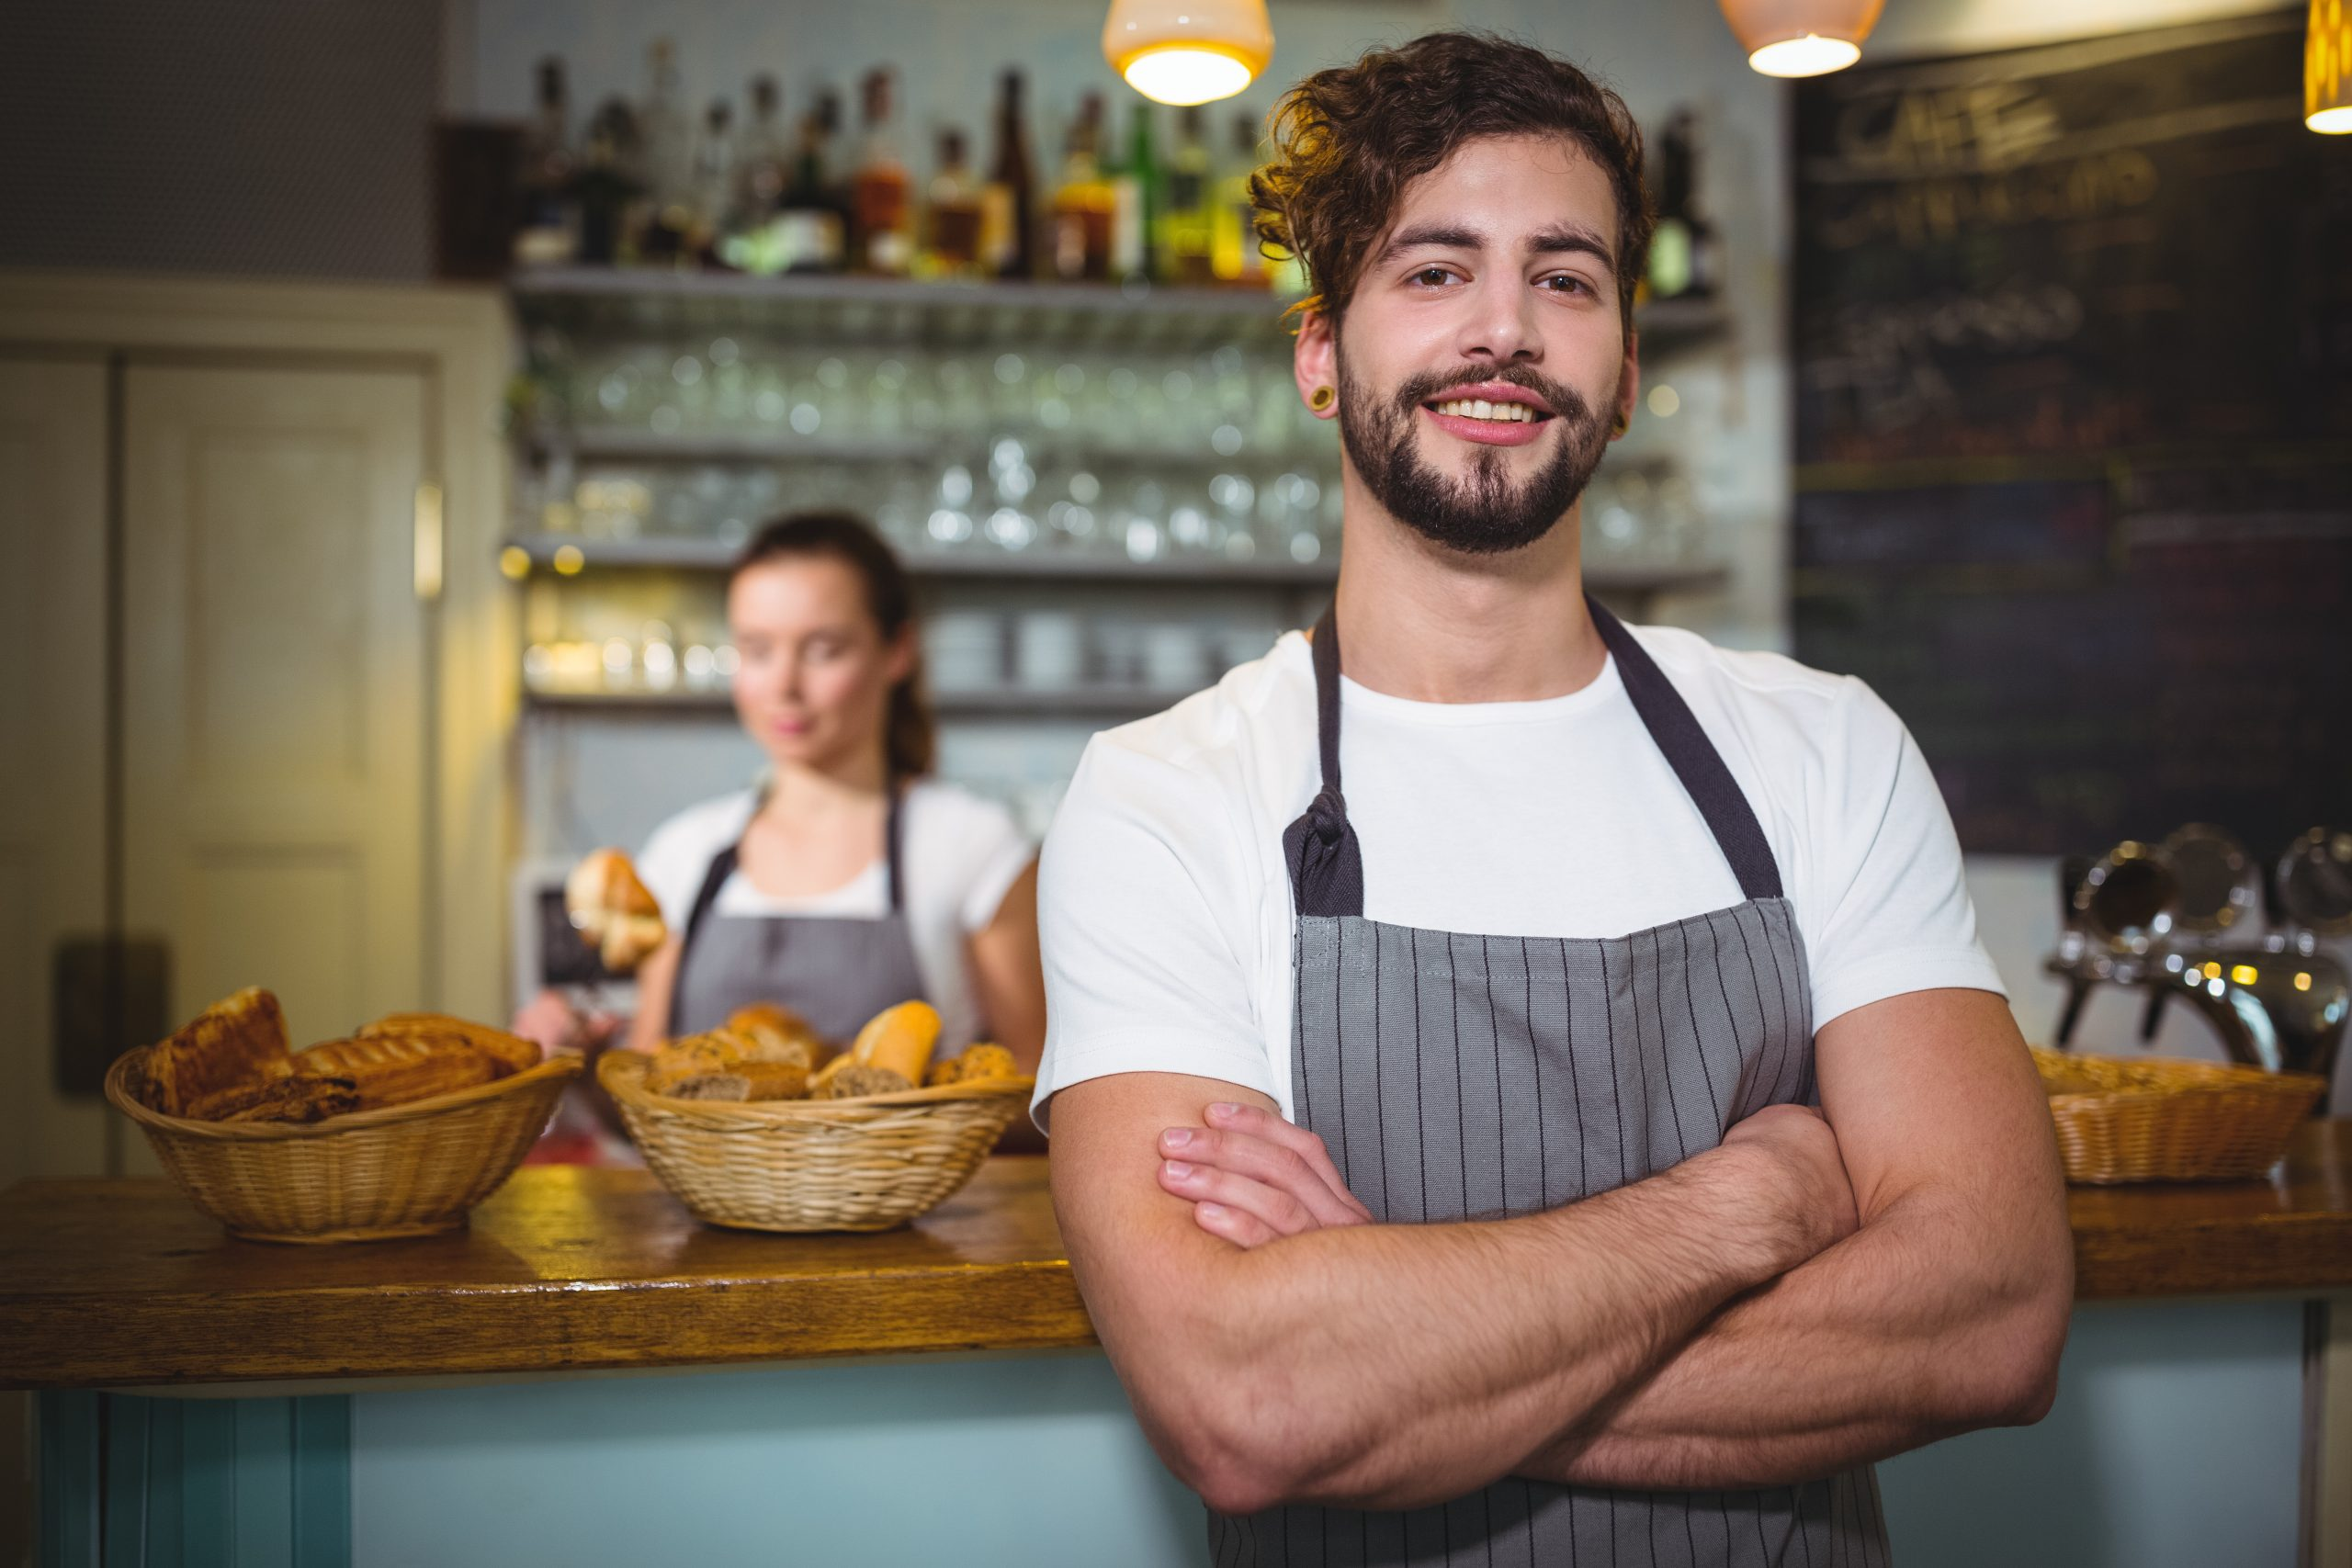 Recruitment crisis in hospitality